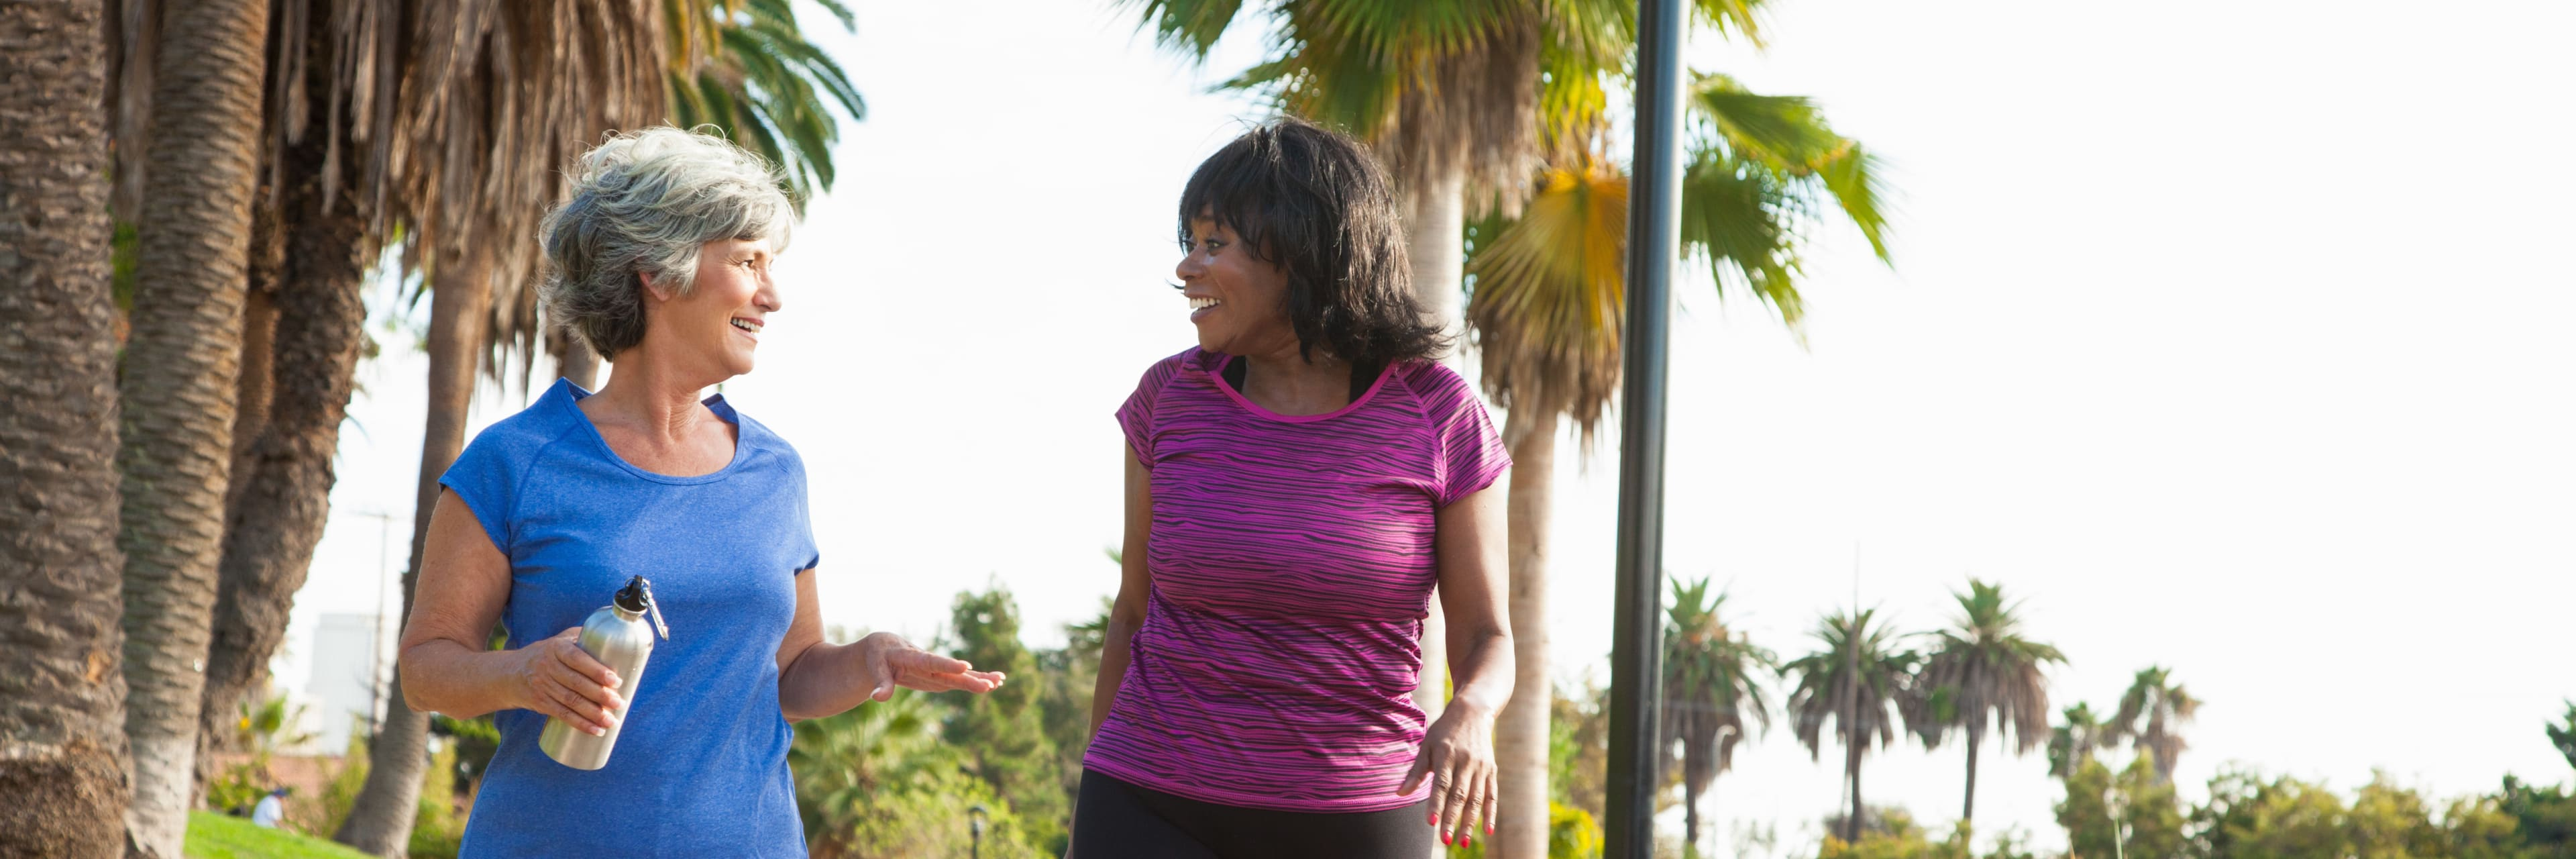 two women walking outside for exercise looking happy and energetic